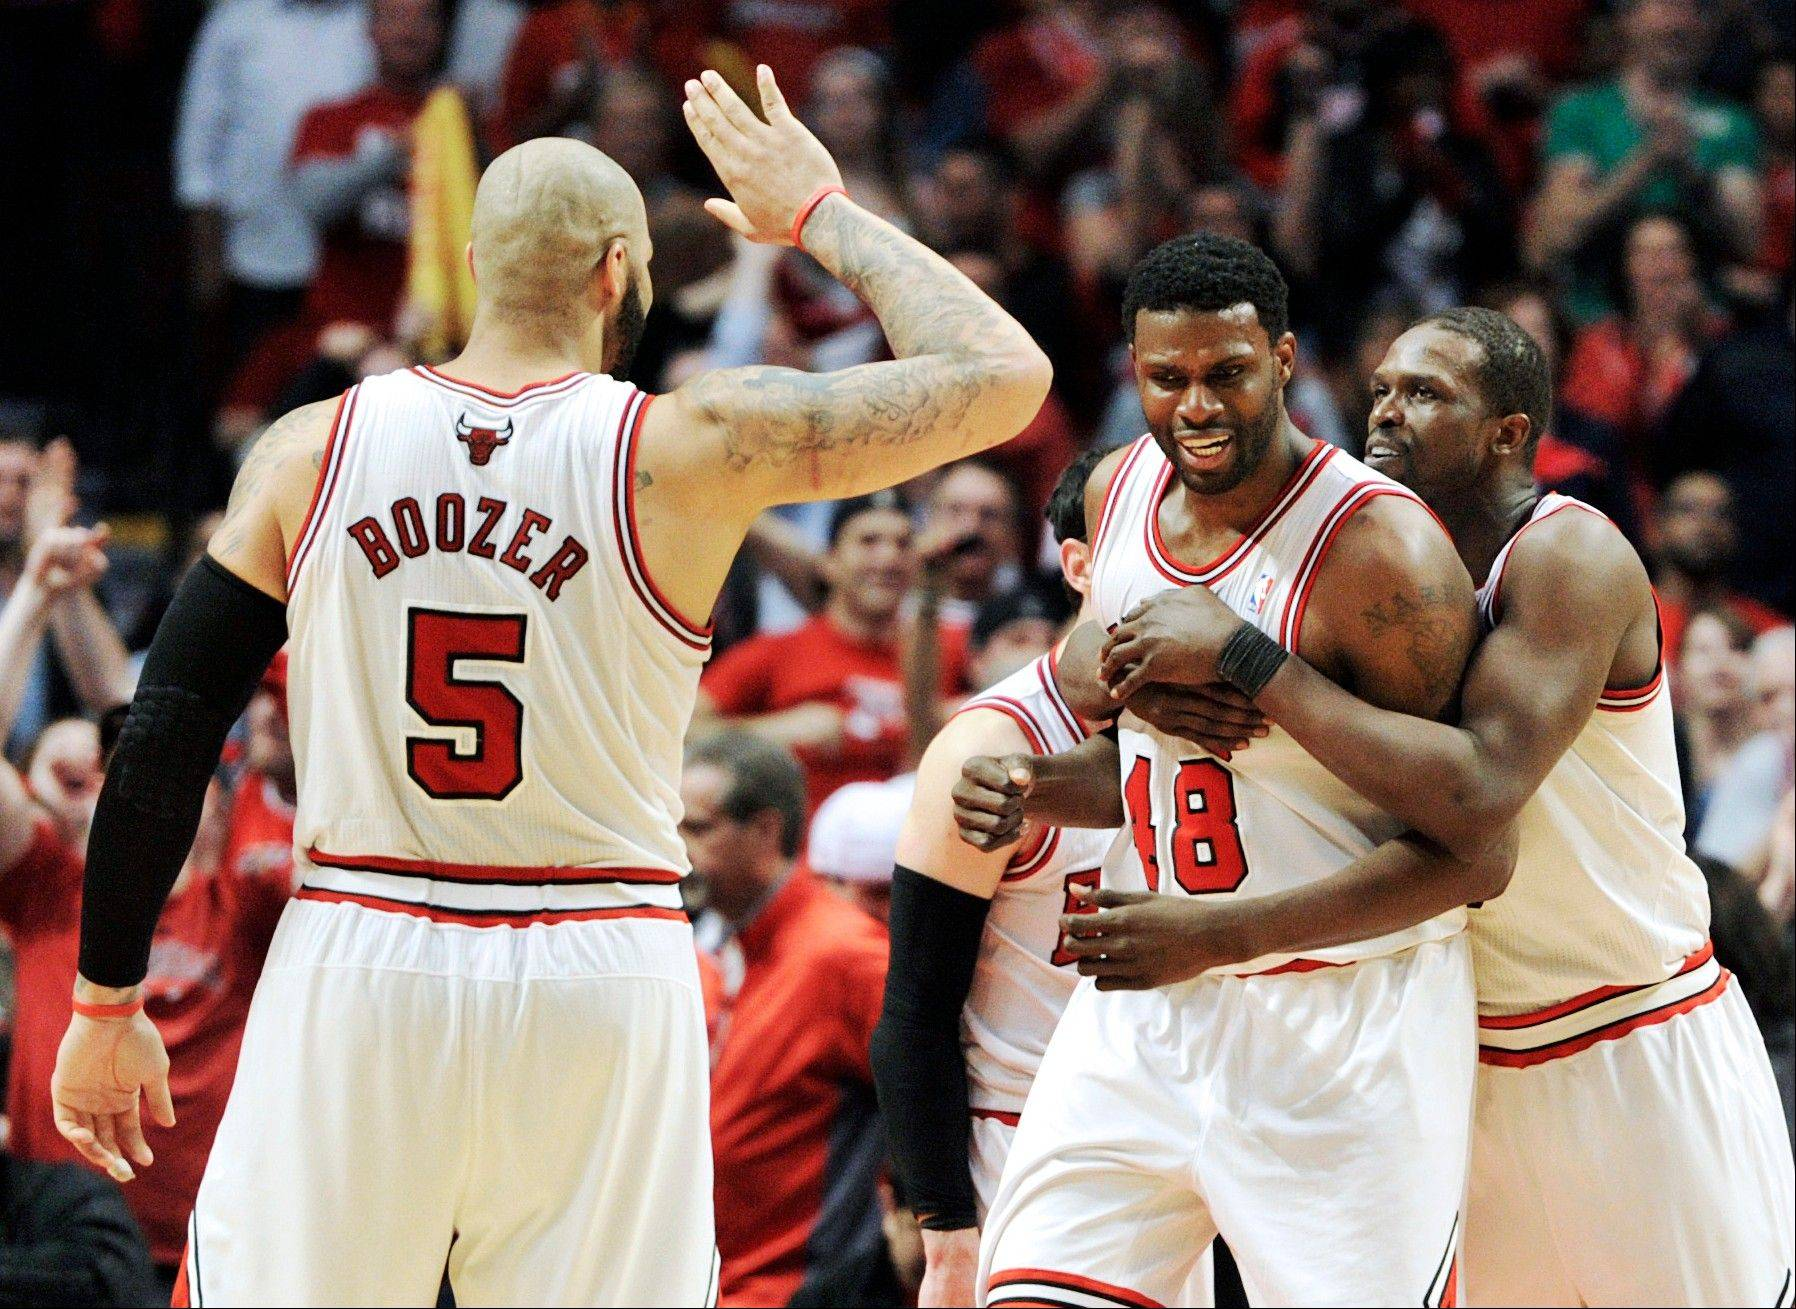 Chicago Bulls' Nazr Mohammed (48) celebrates a late basket with teammates Carlos Boozer (5) and Luol Deng during the third overtime in Game 4 of their first-round NBA basketball playoff series against the Brooklyn Nets Saturday, April 27, 2013, in Chicago. The Bulls won 142-134 in three overtimes.